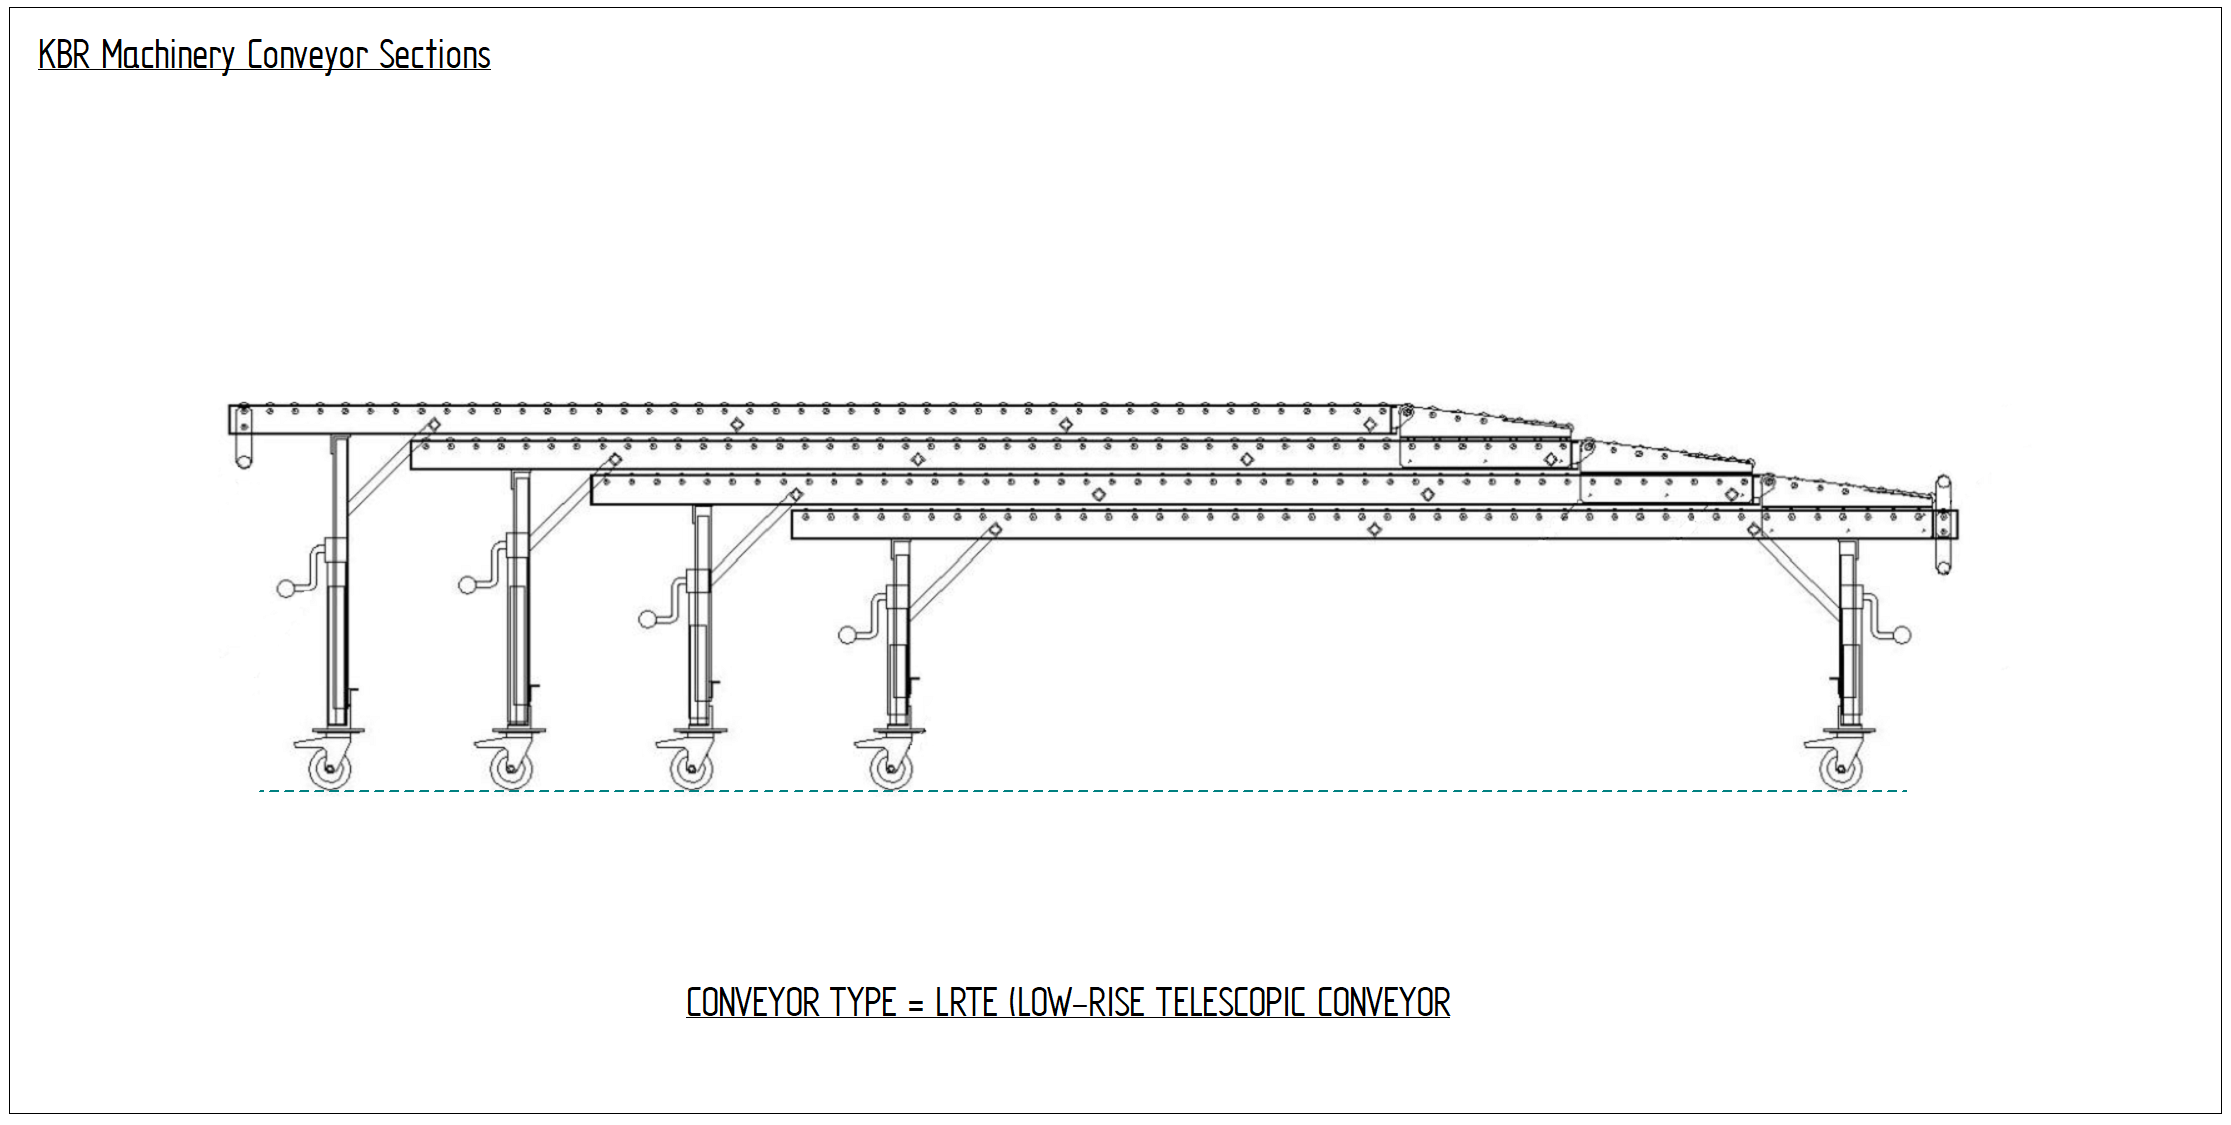 Telescopic Vehicle Conveyor Design Drawing for Unloading Containers and Articulated Vehicles from a level dock or platform